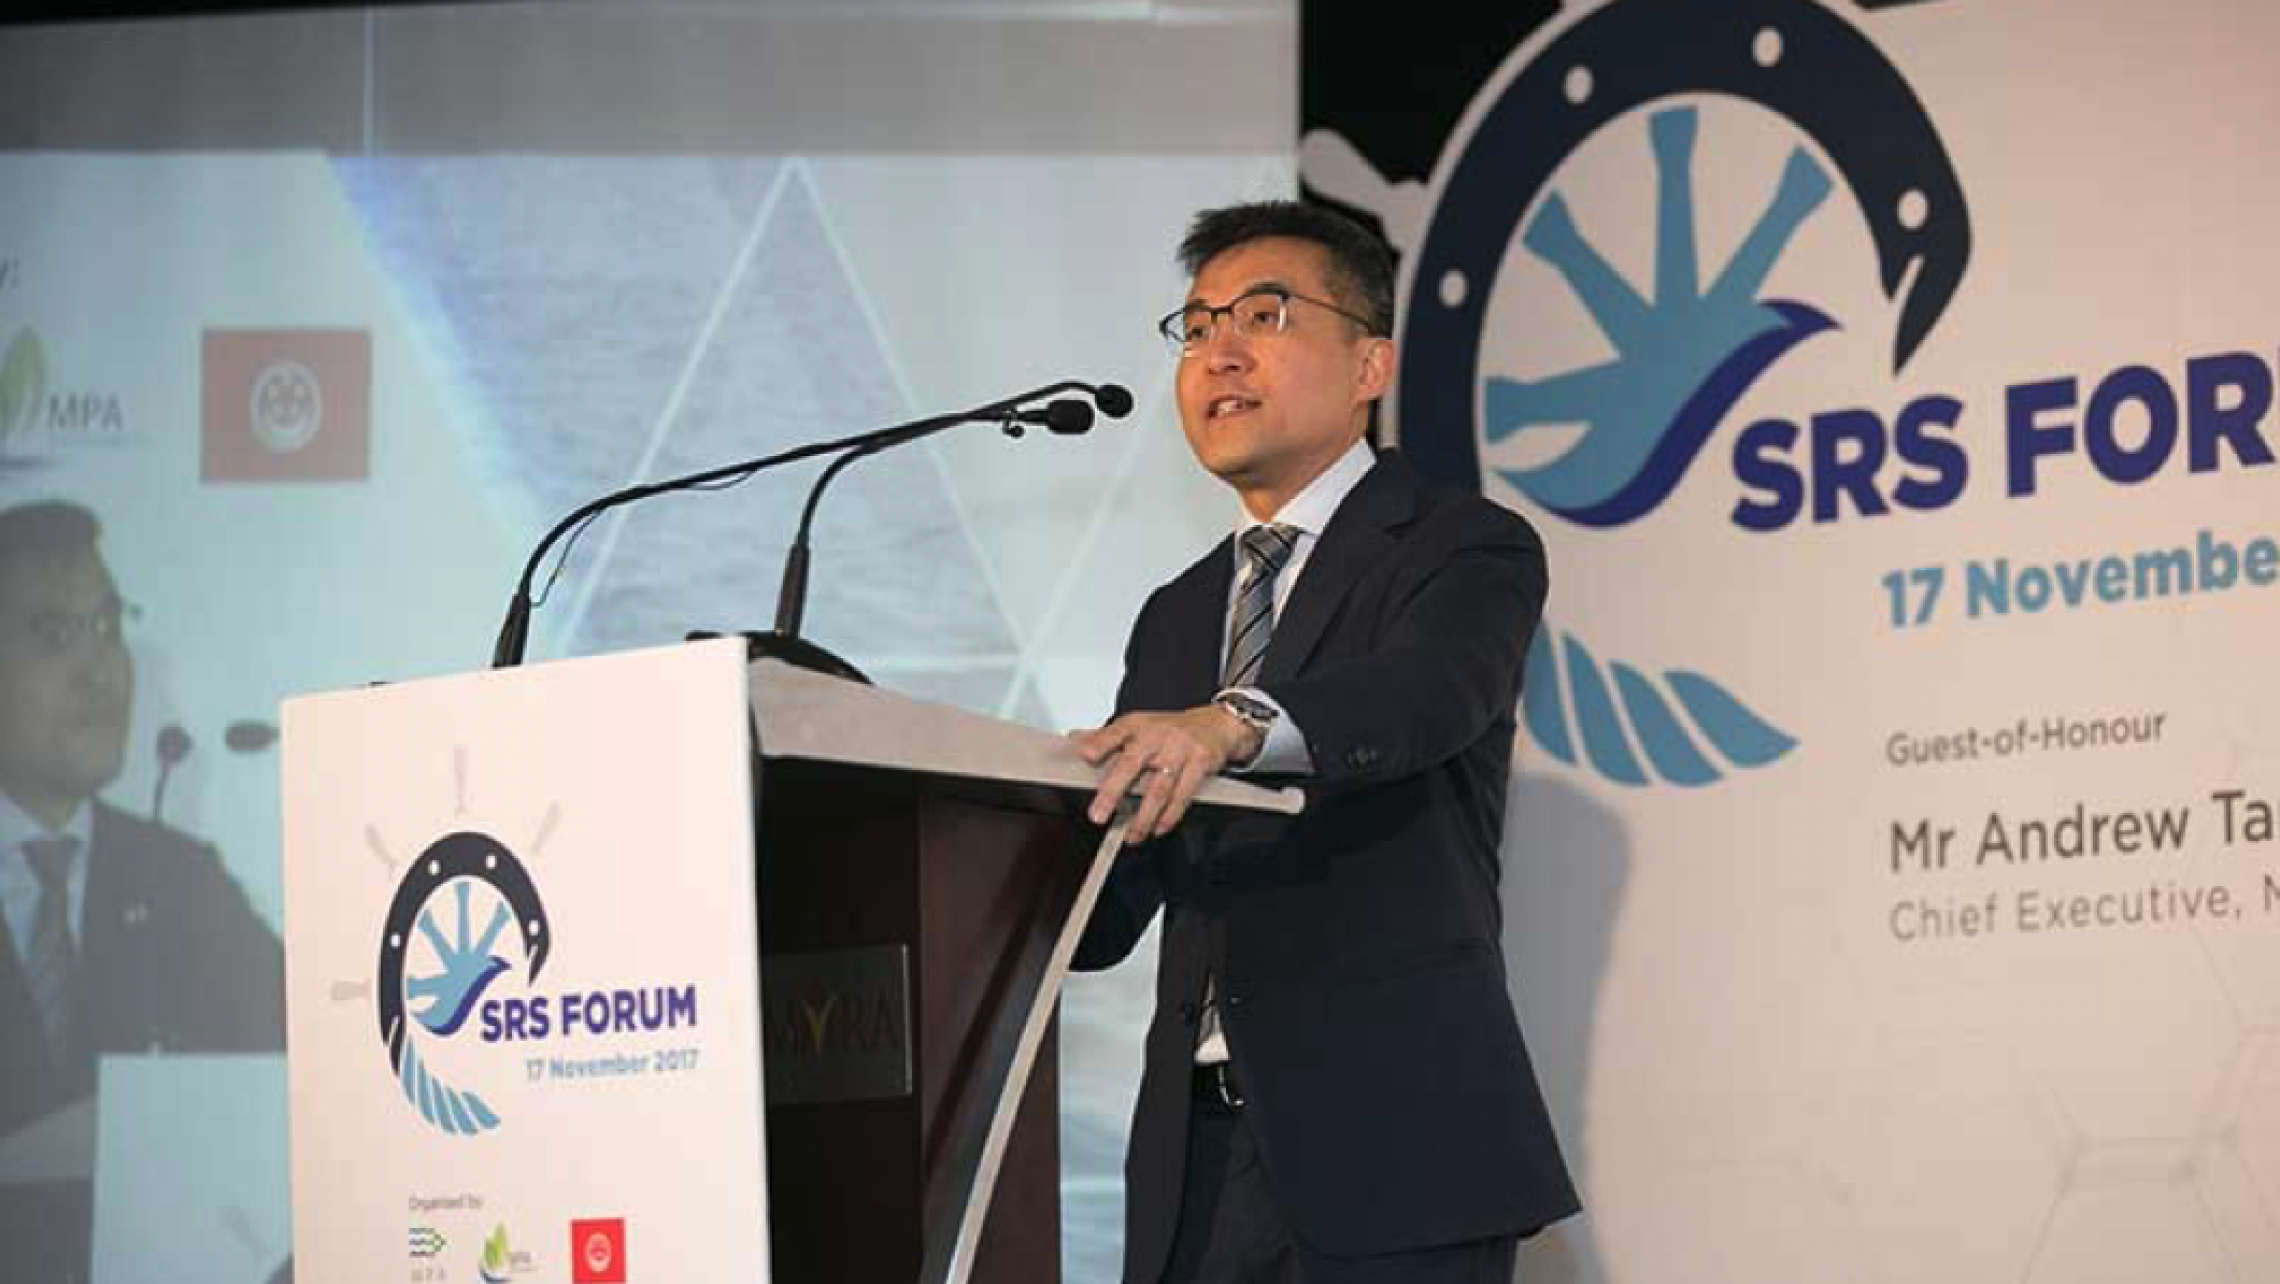 Mr. Tan, chief executive manager Singapore Maritime Port Authority